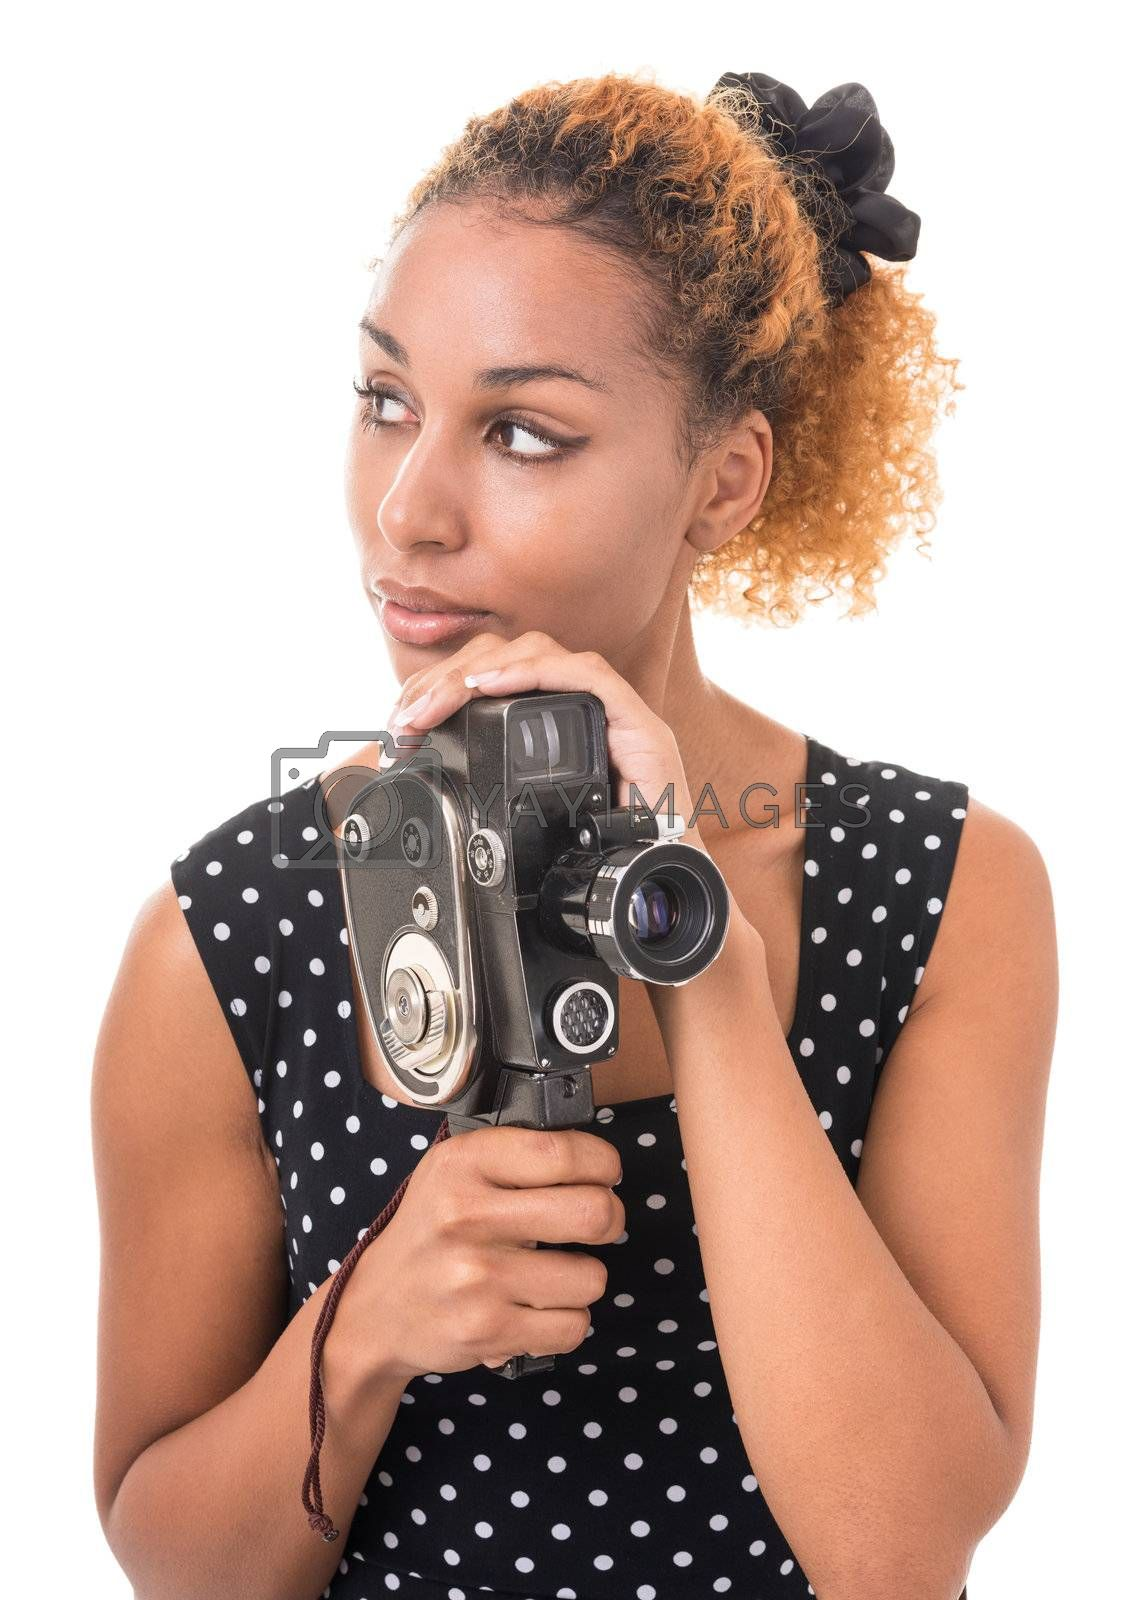 portrait of a young woman with a camera in hand, in a retro style